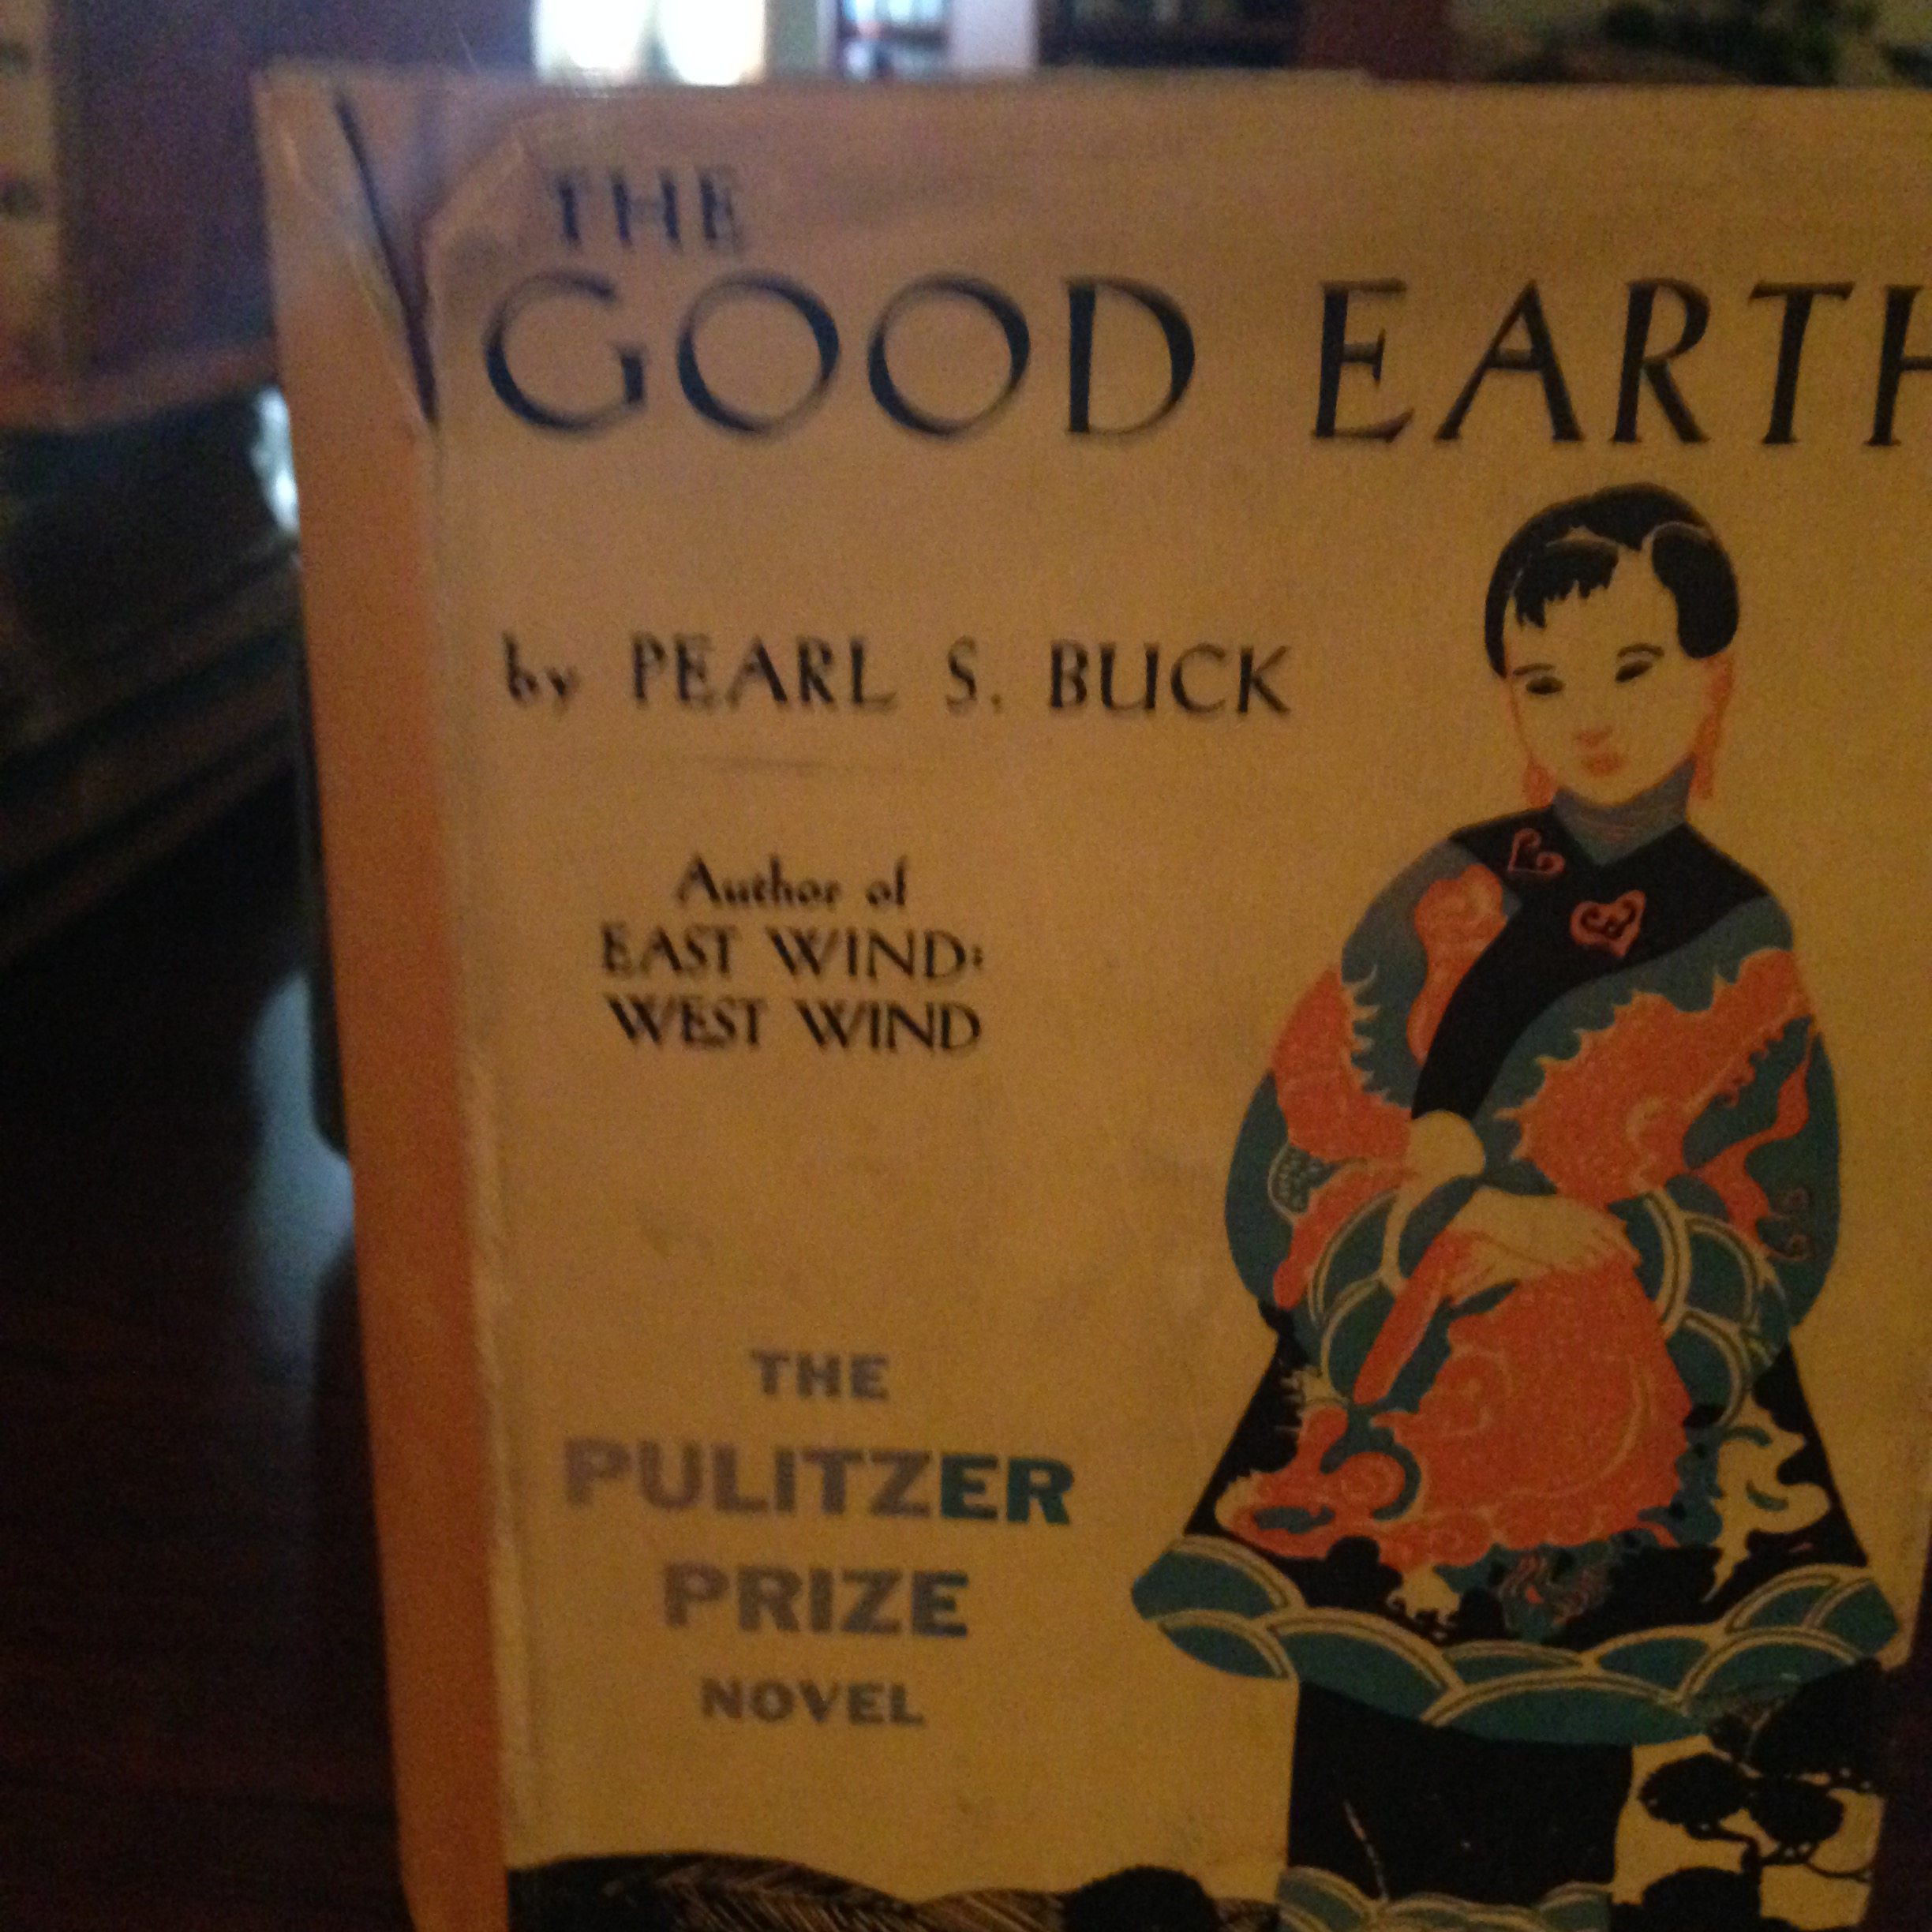 a review of pearl bucks novel the good earth Our reading guide for the good earth by pearl s buck includes a book club discussion guide, book review, plot summary-synopsis and author bio.